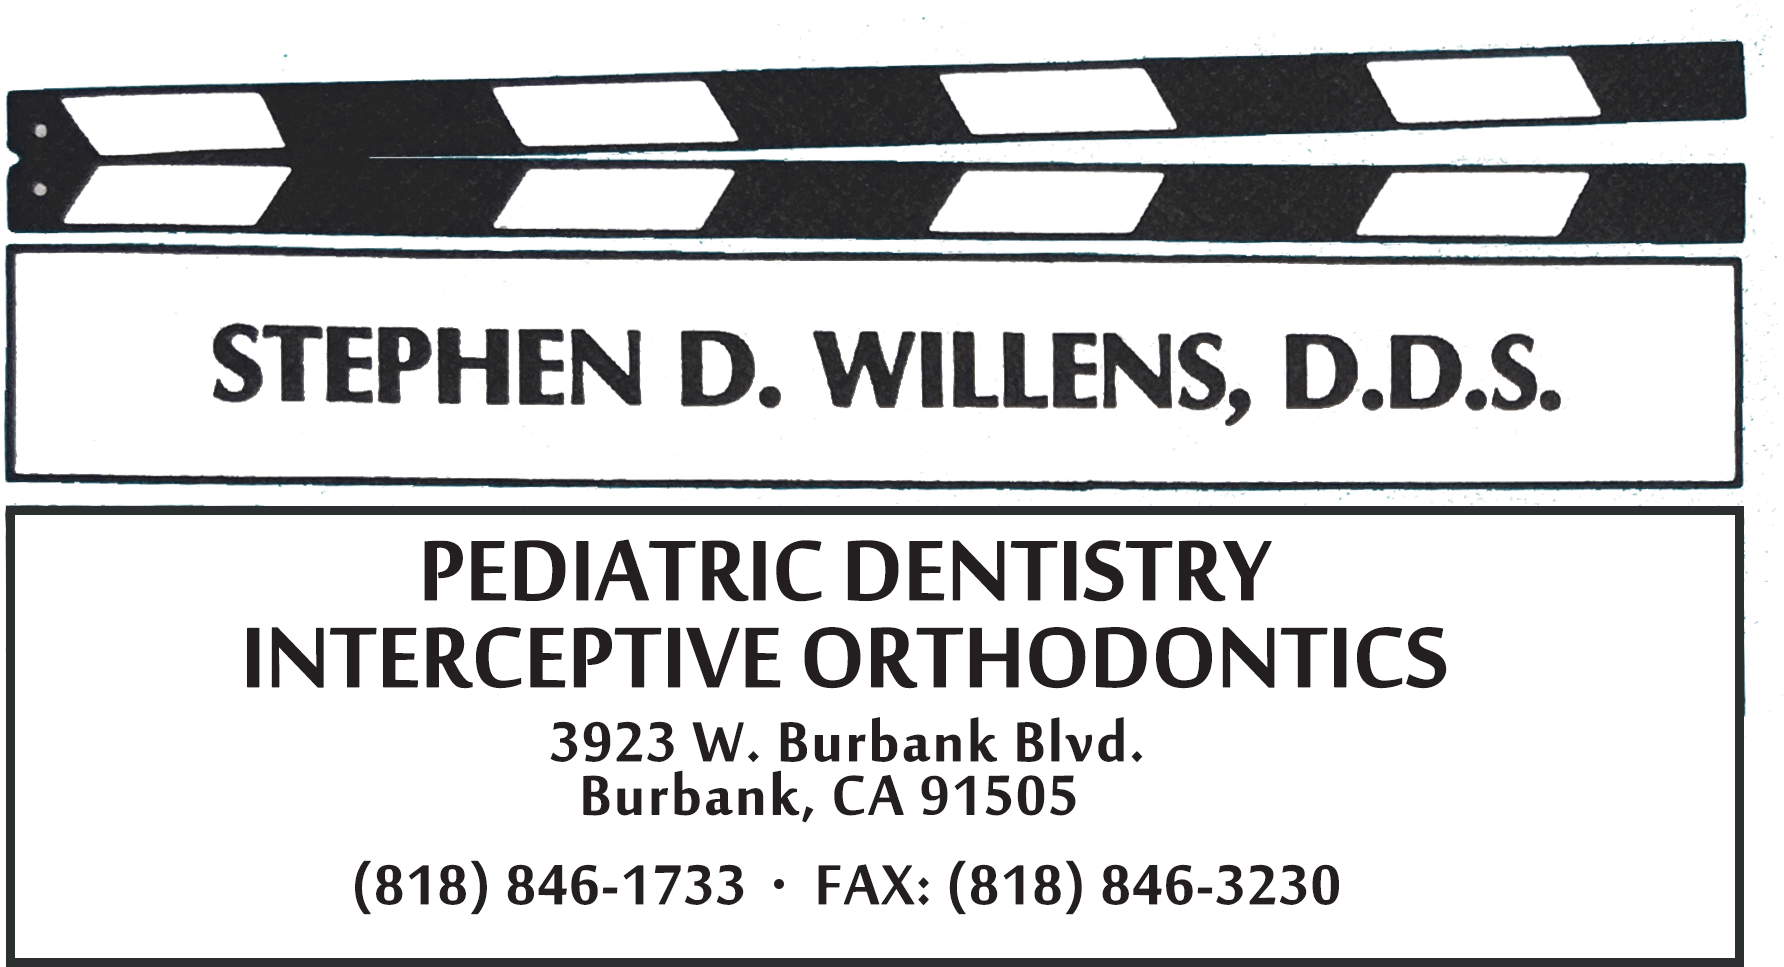 Logo for Dr. Stephen Willens - Pediatric Dentistry and Orthodontics in Burbank, CA